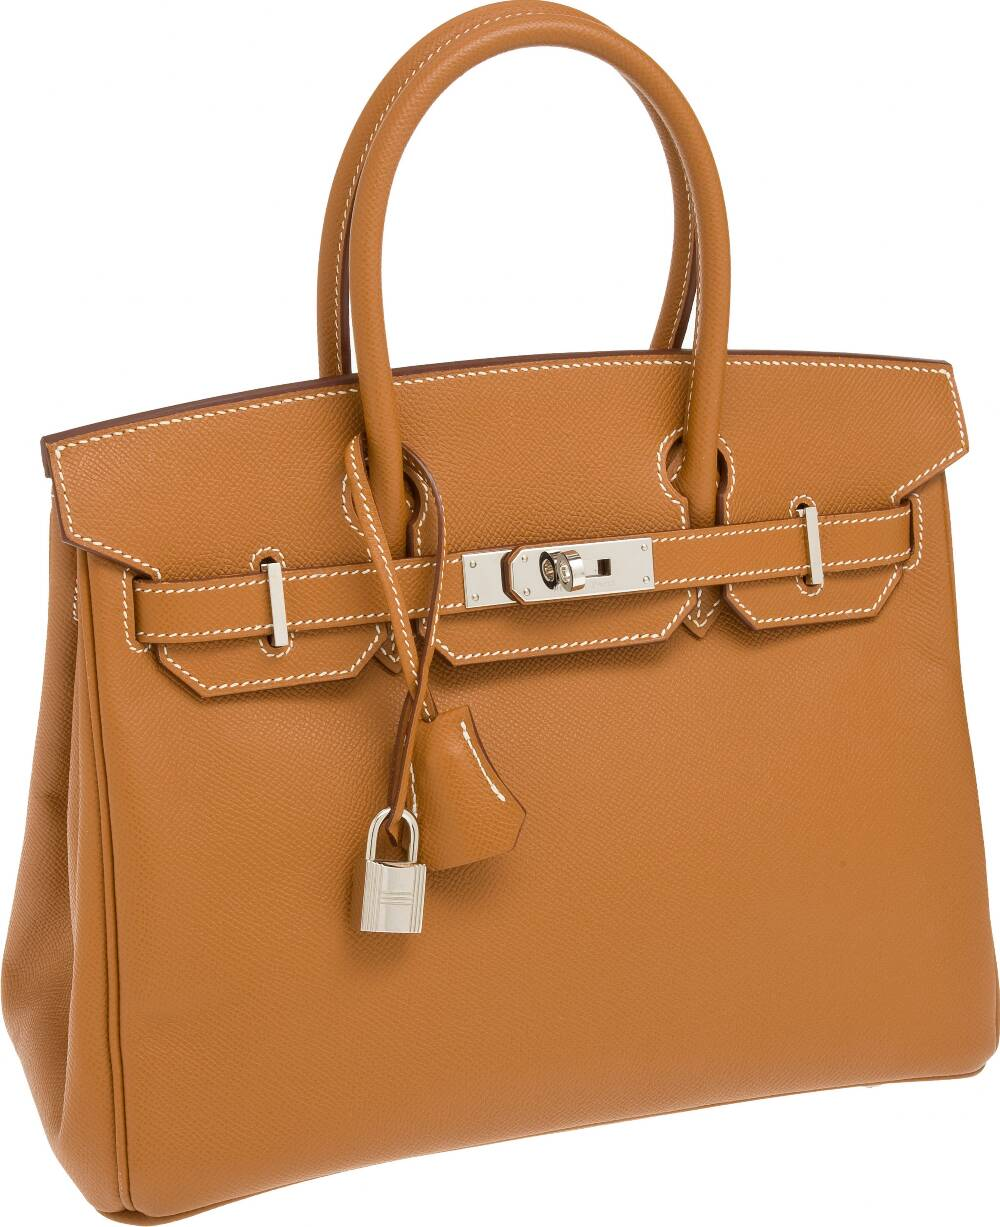 d1fbc57d913 The Hermes Birkin bag has a lock and keys. The keys are enclosed in a  leather lanyard known as a clochette